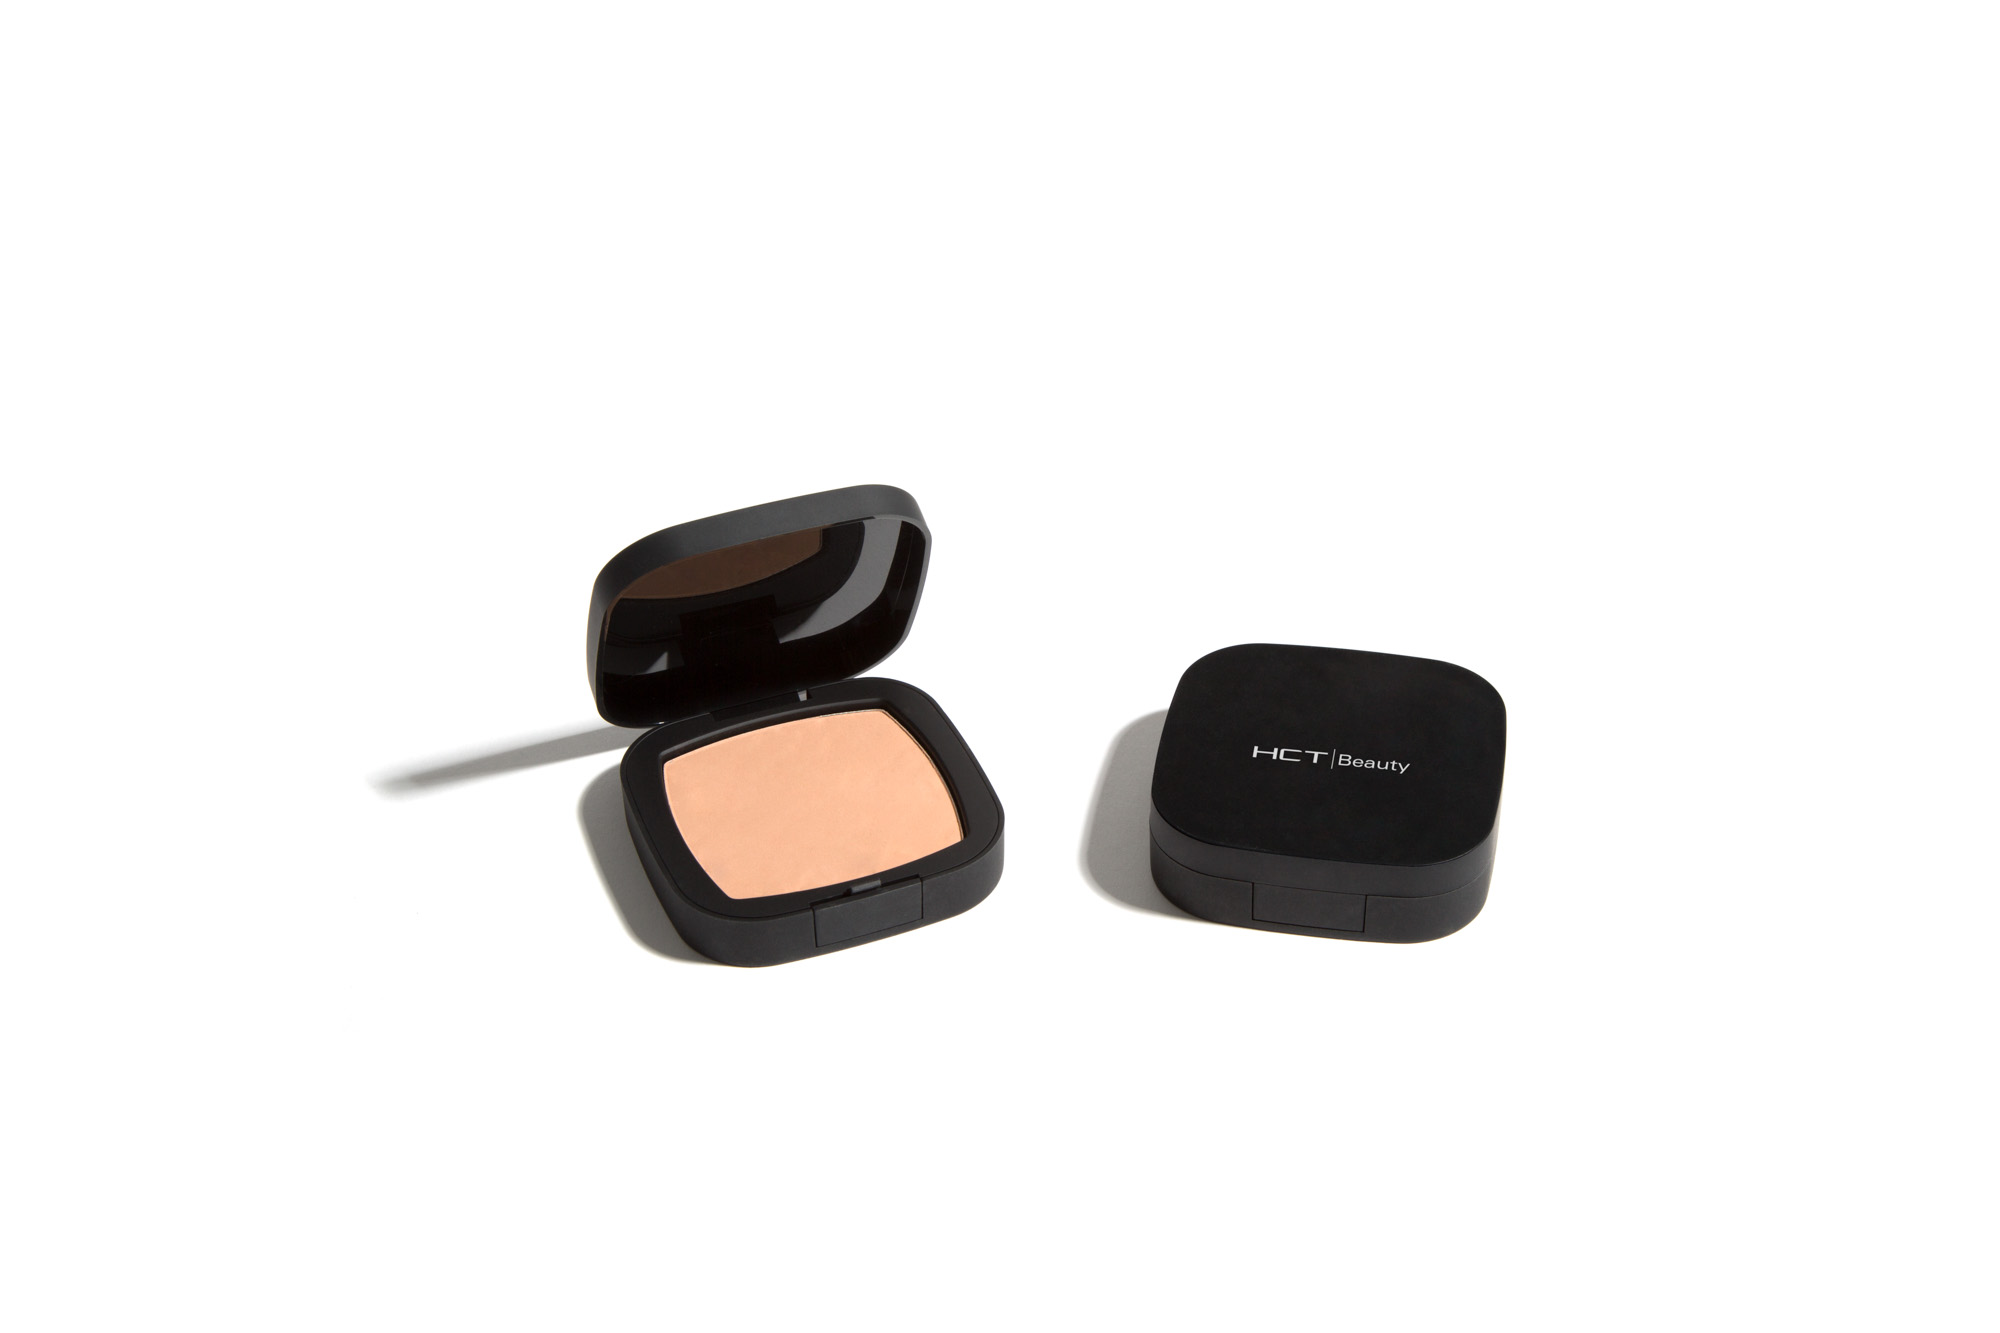 New Zen Pressed Powder